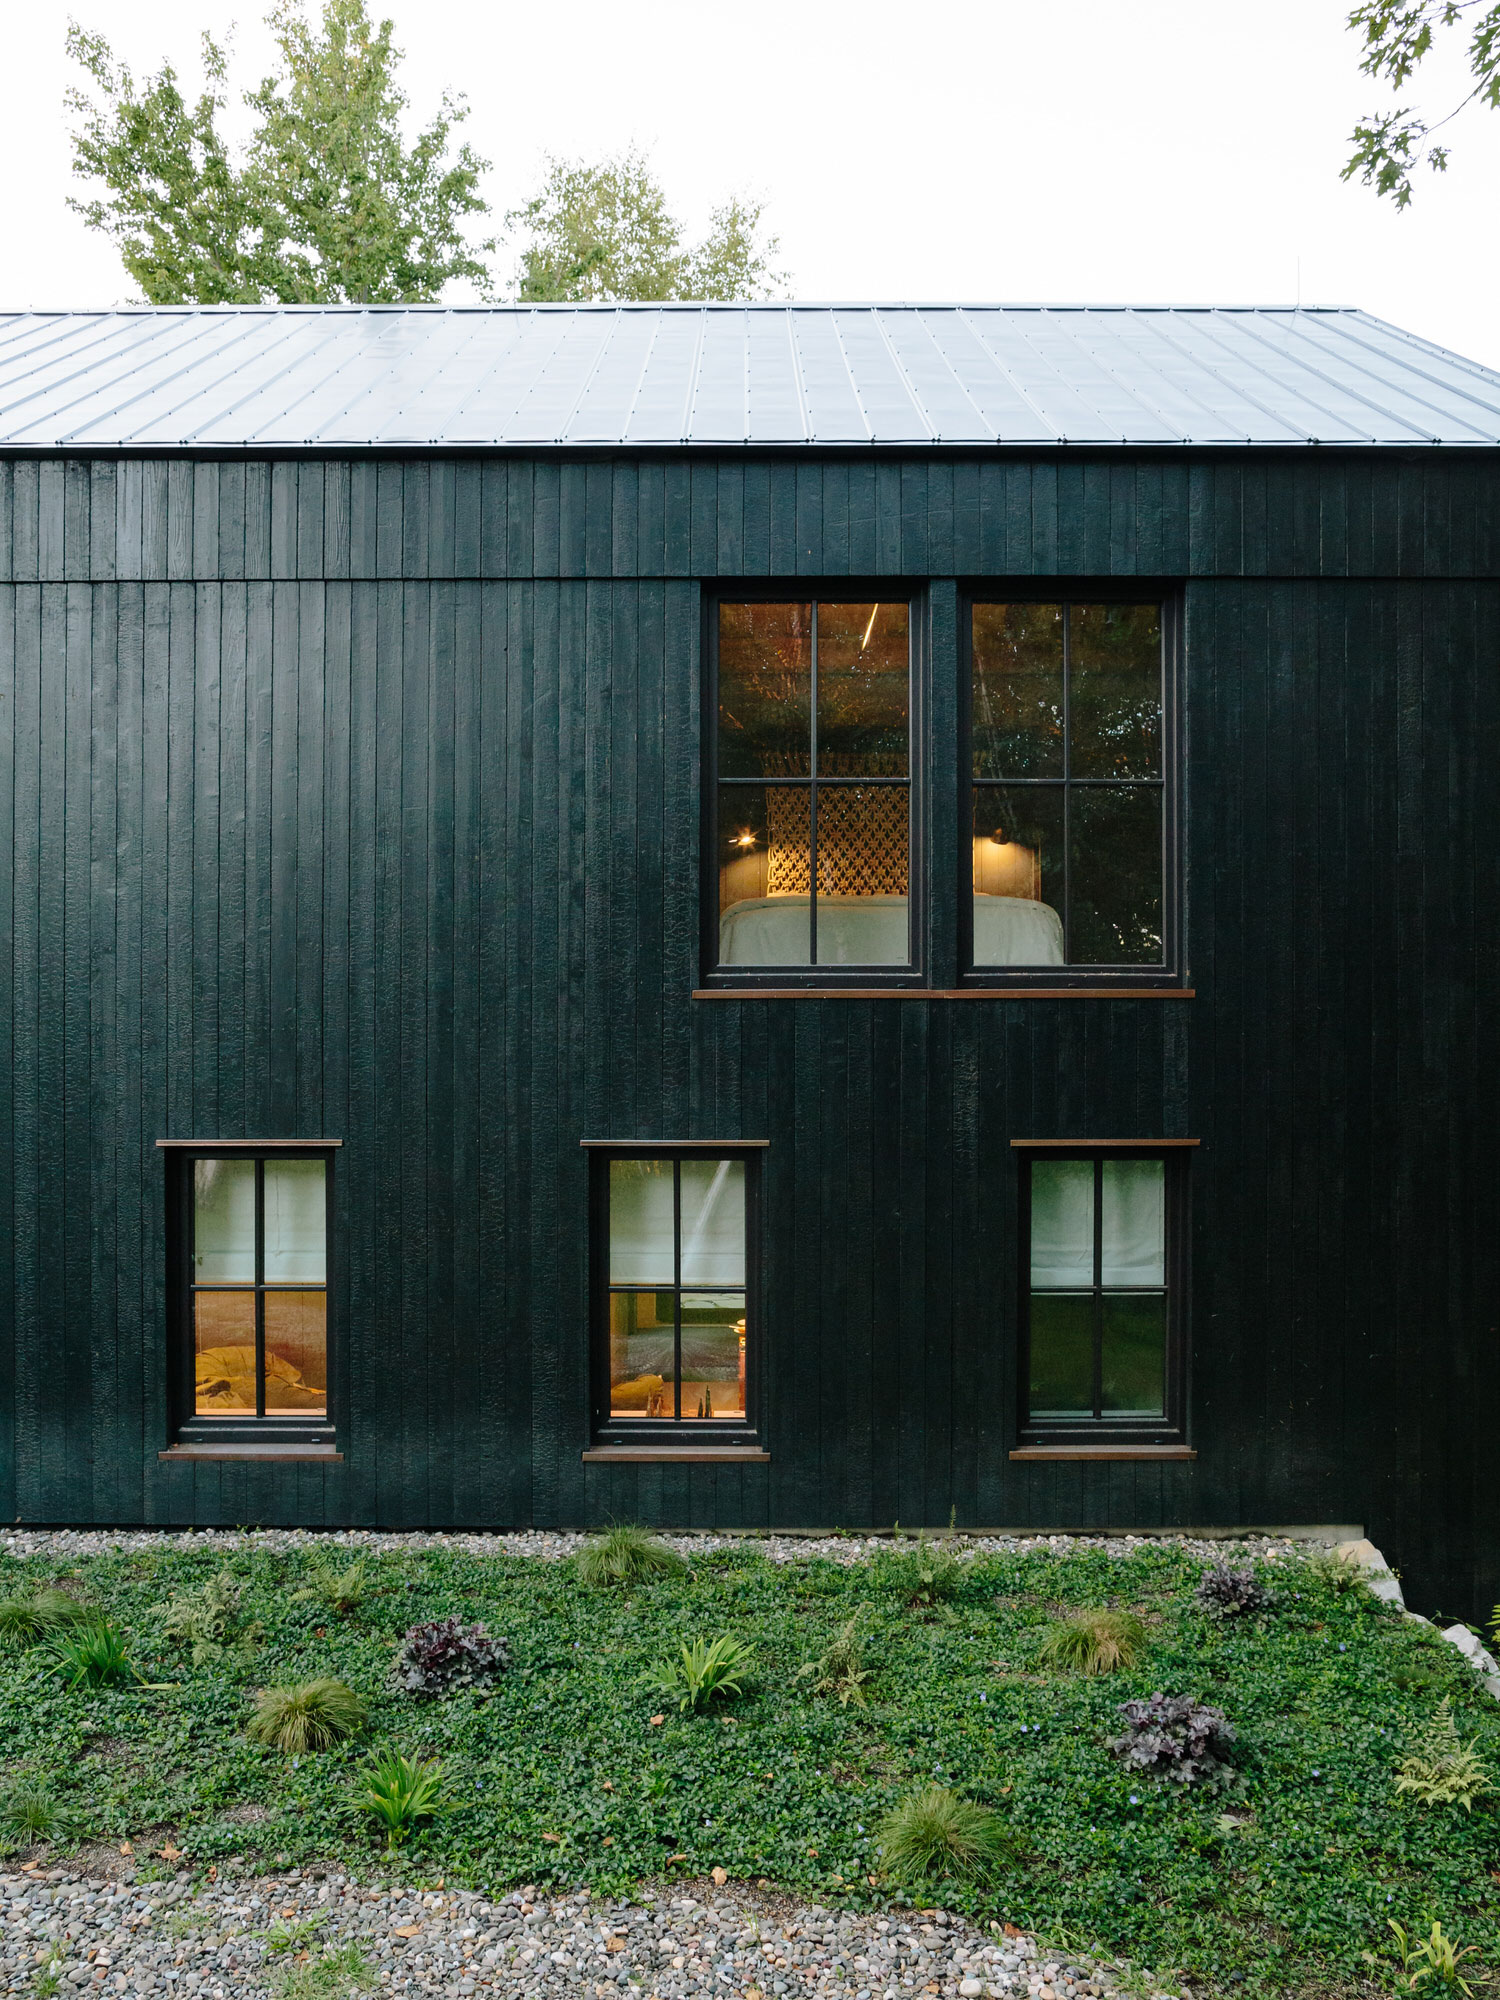 BarlisWedlick, Fox Hall House Hudson Valley, Passive Design, Photo Brian Ferry | Yellowtrace